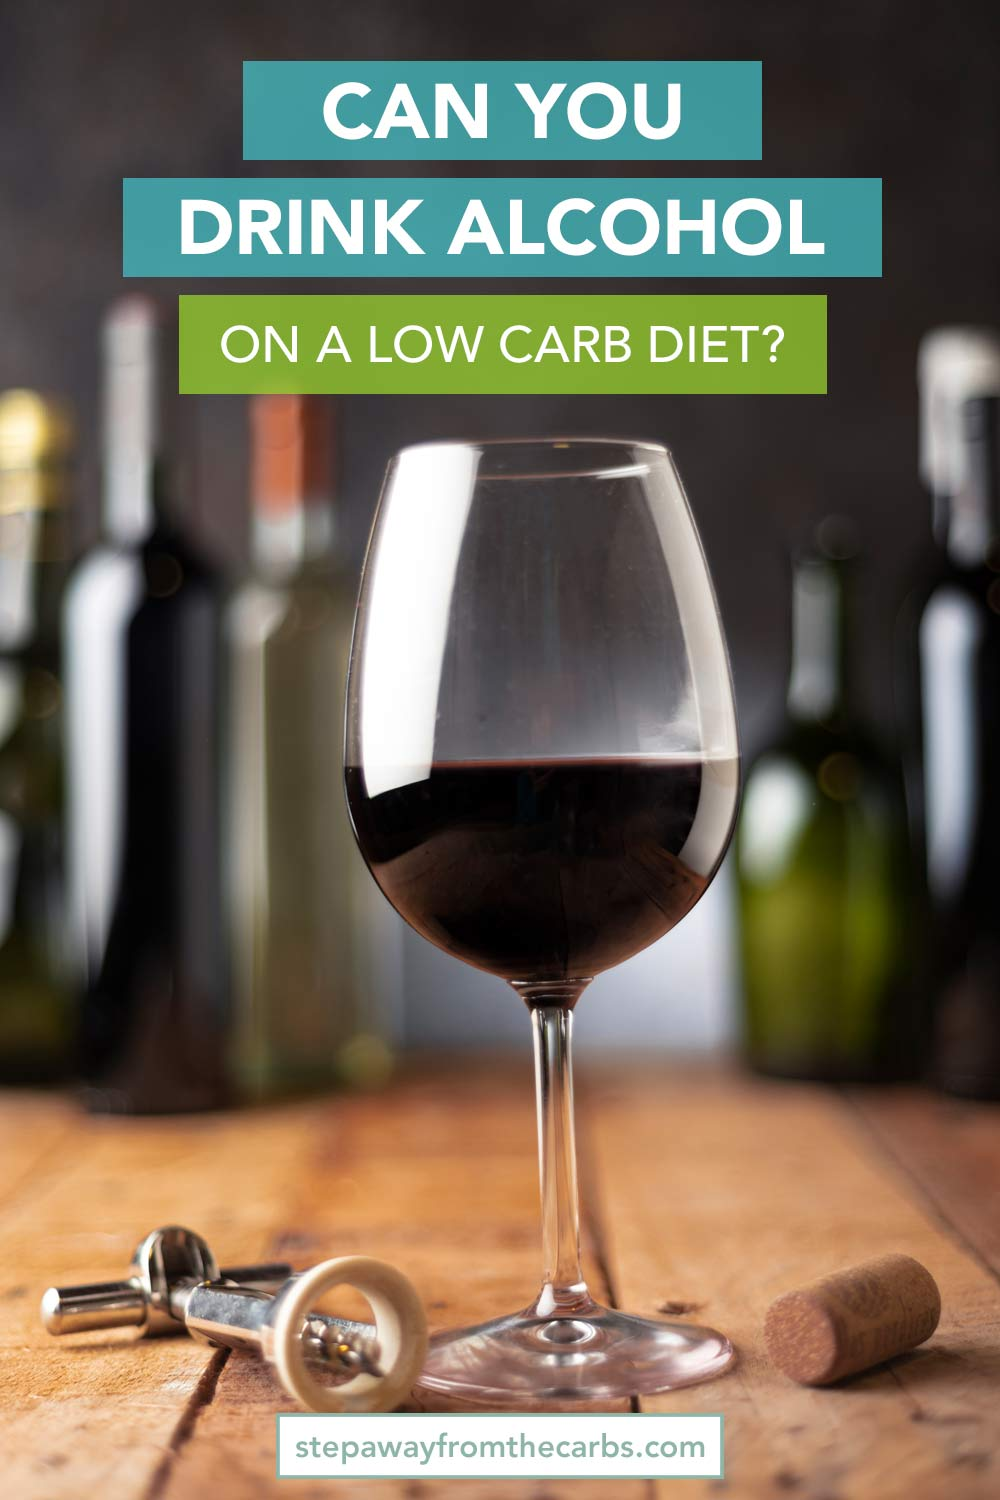 Can You Drink Alcohol on a Low Carb Diet?